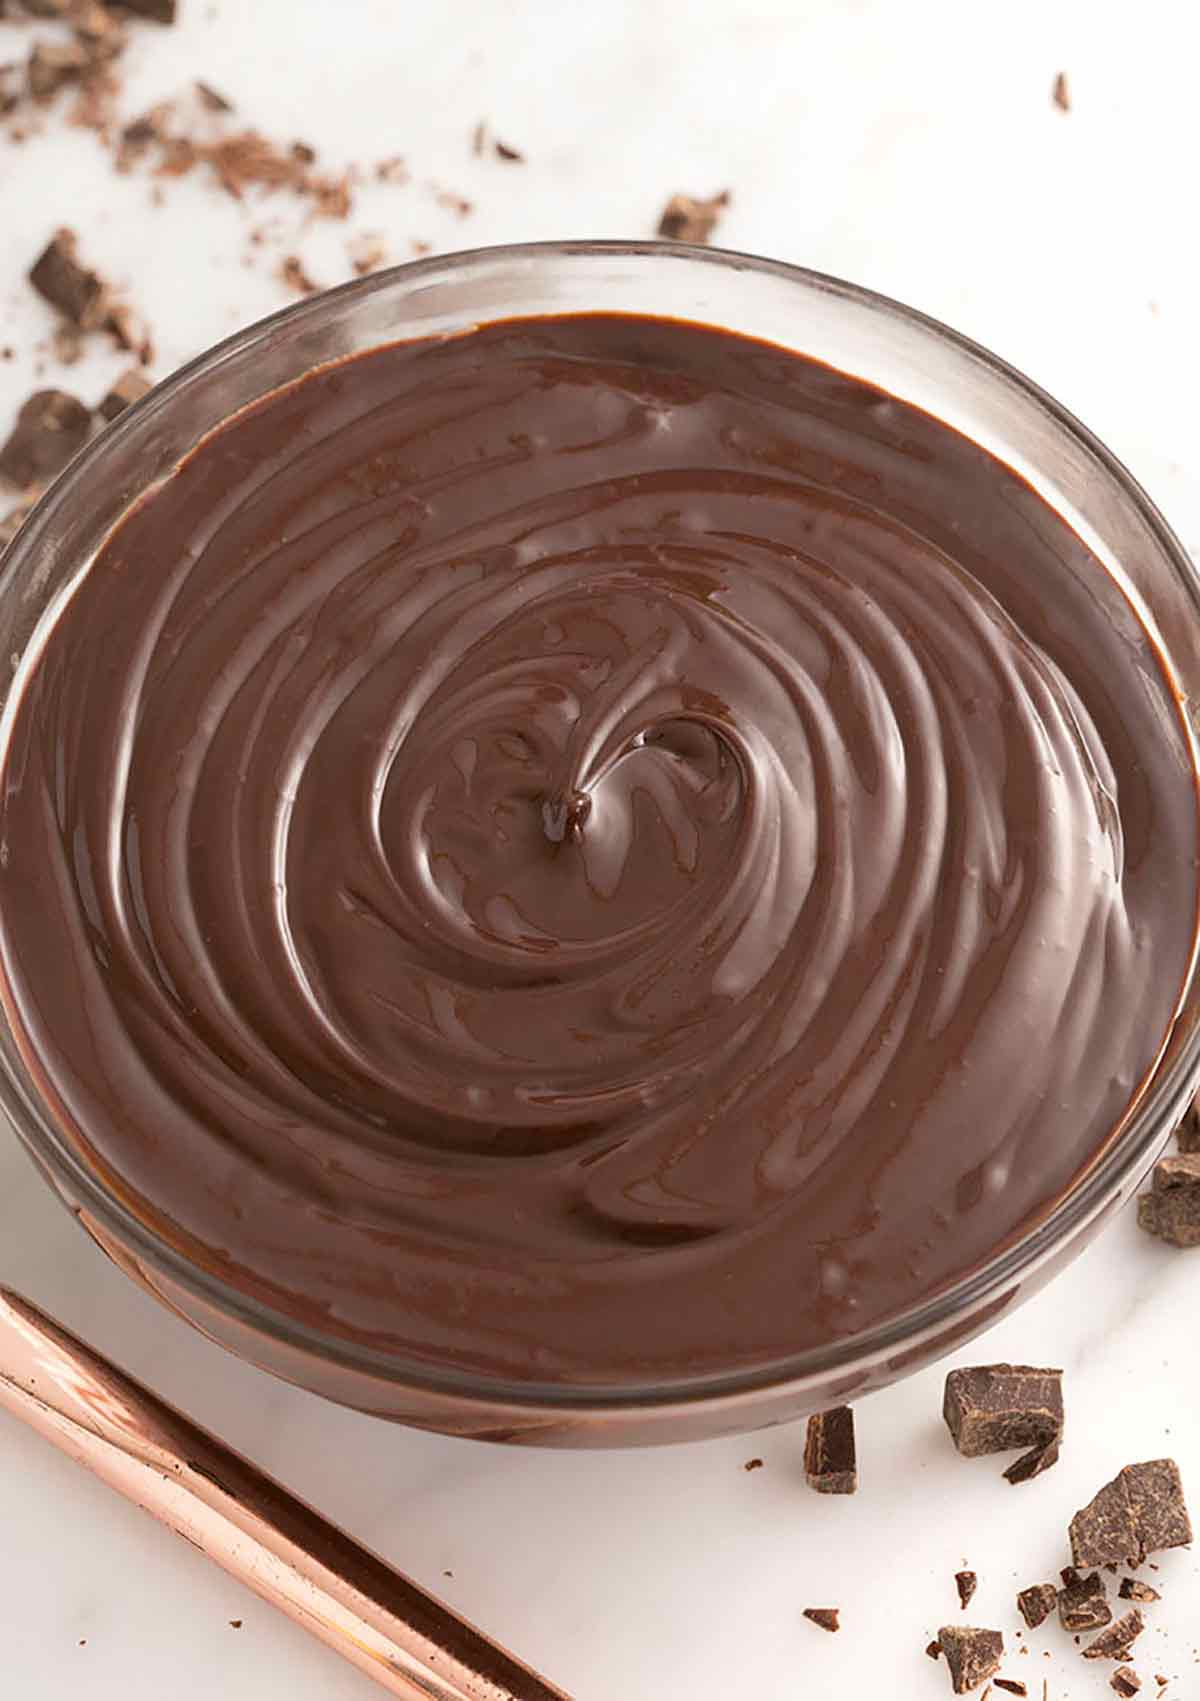 Overhead view of a bowl of chocolate ganache.